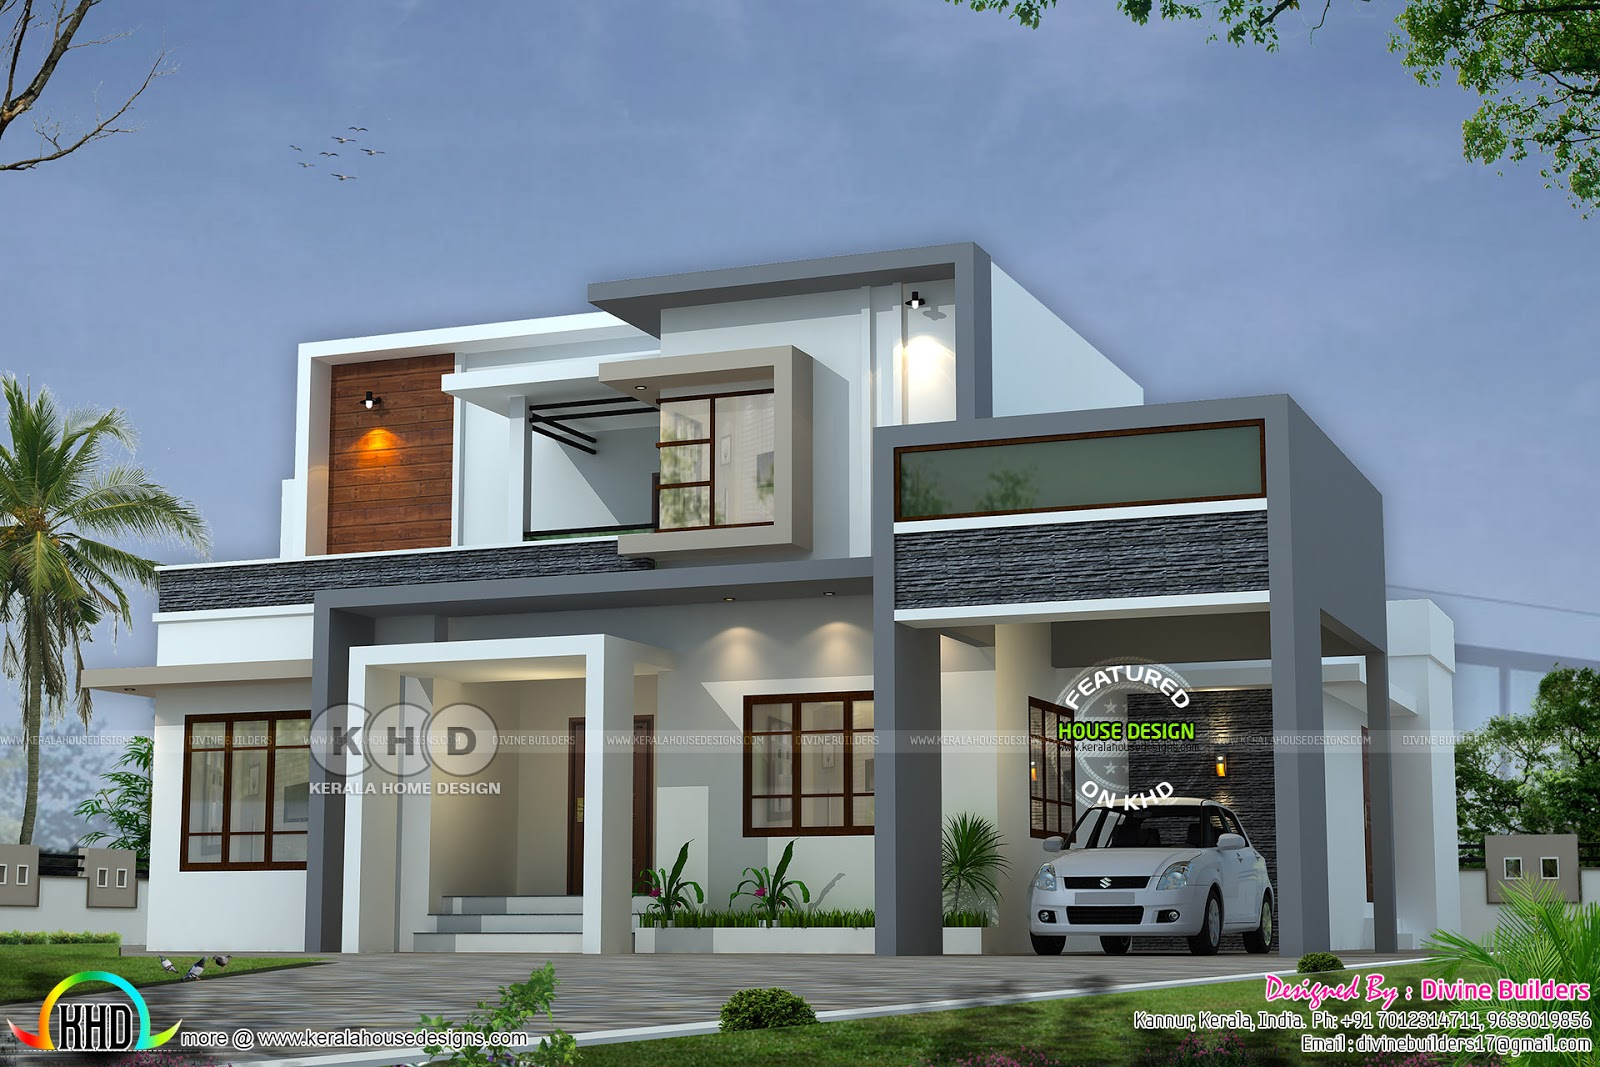 2017 kerala home design and floor plans for Home plans architect